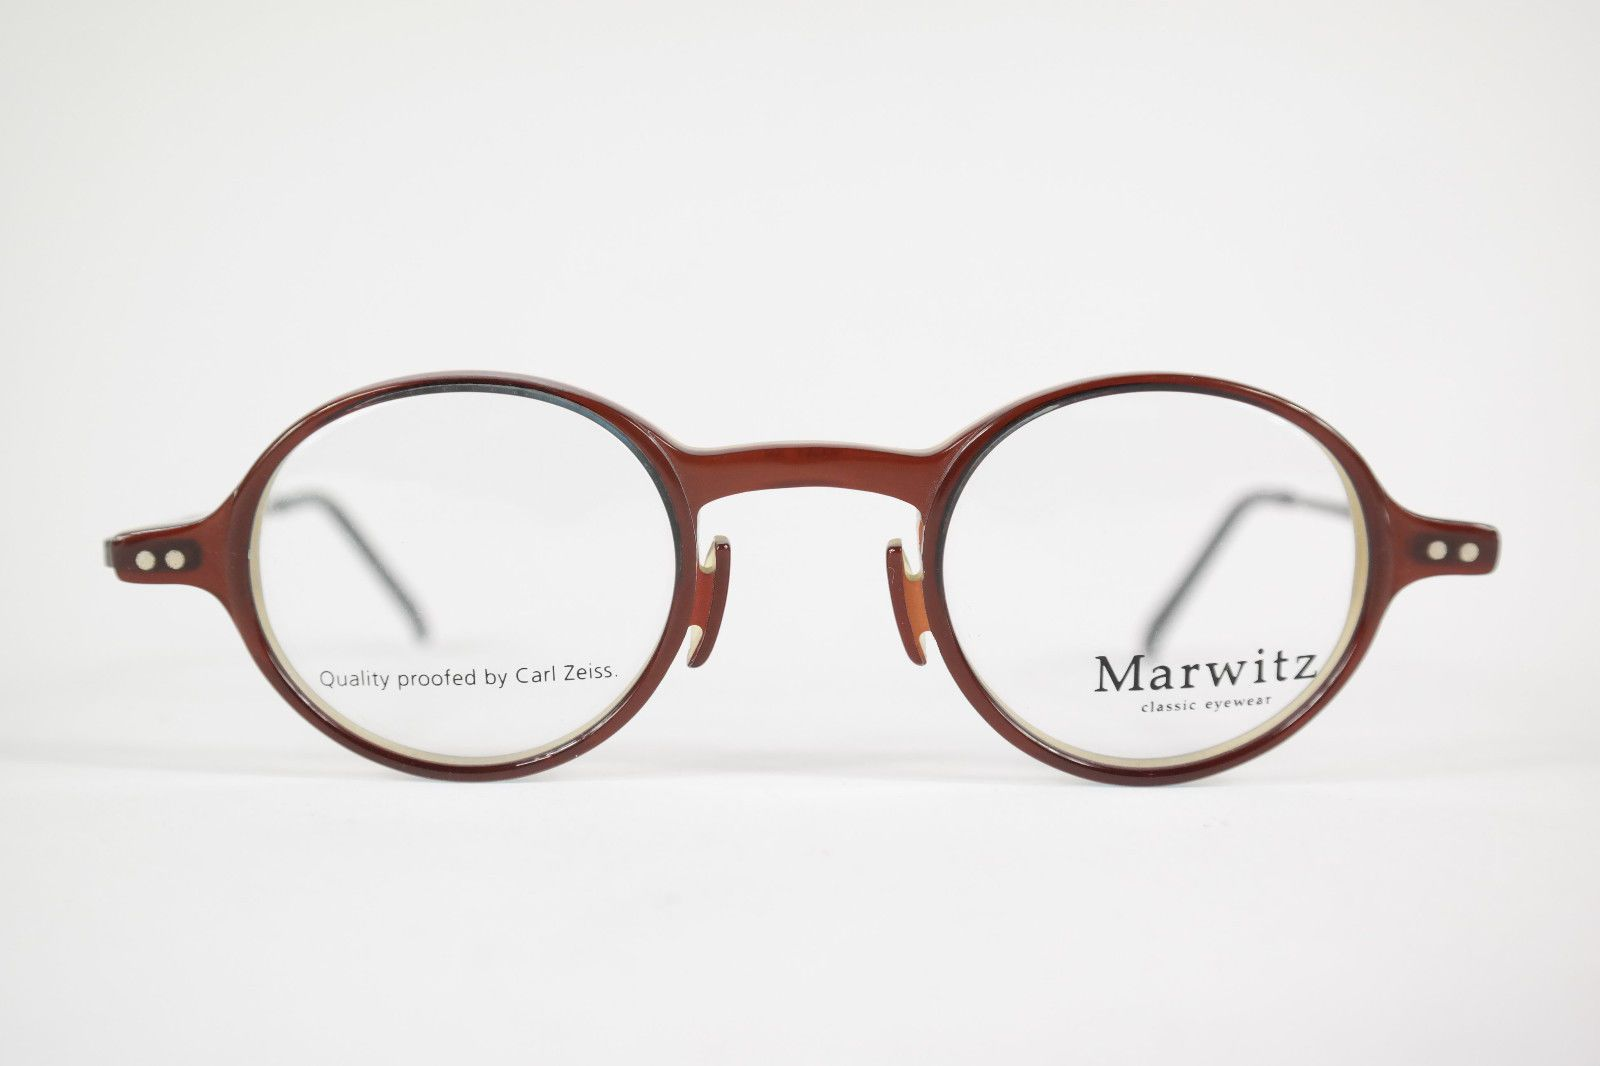 168629946c154 Carl Zeiss Marwitz 8402 8200 40    24 140 brown silver glasses frame glasses  NOS P1 Quality proofed by Carl Zeiss new old stock Unisex You are looking  at a ...